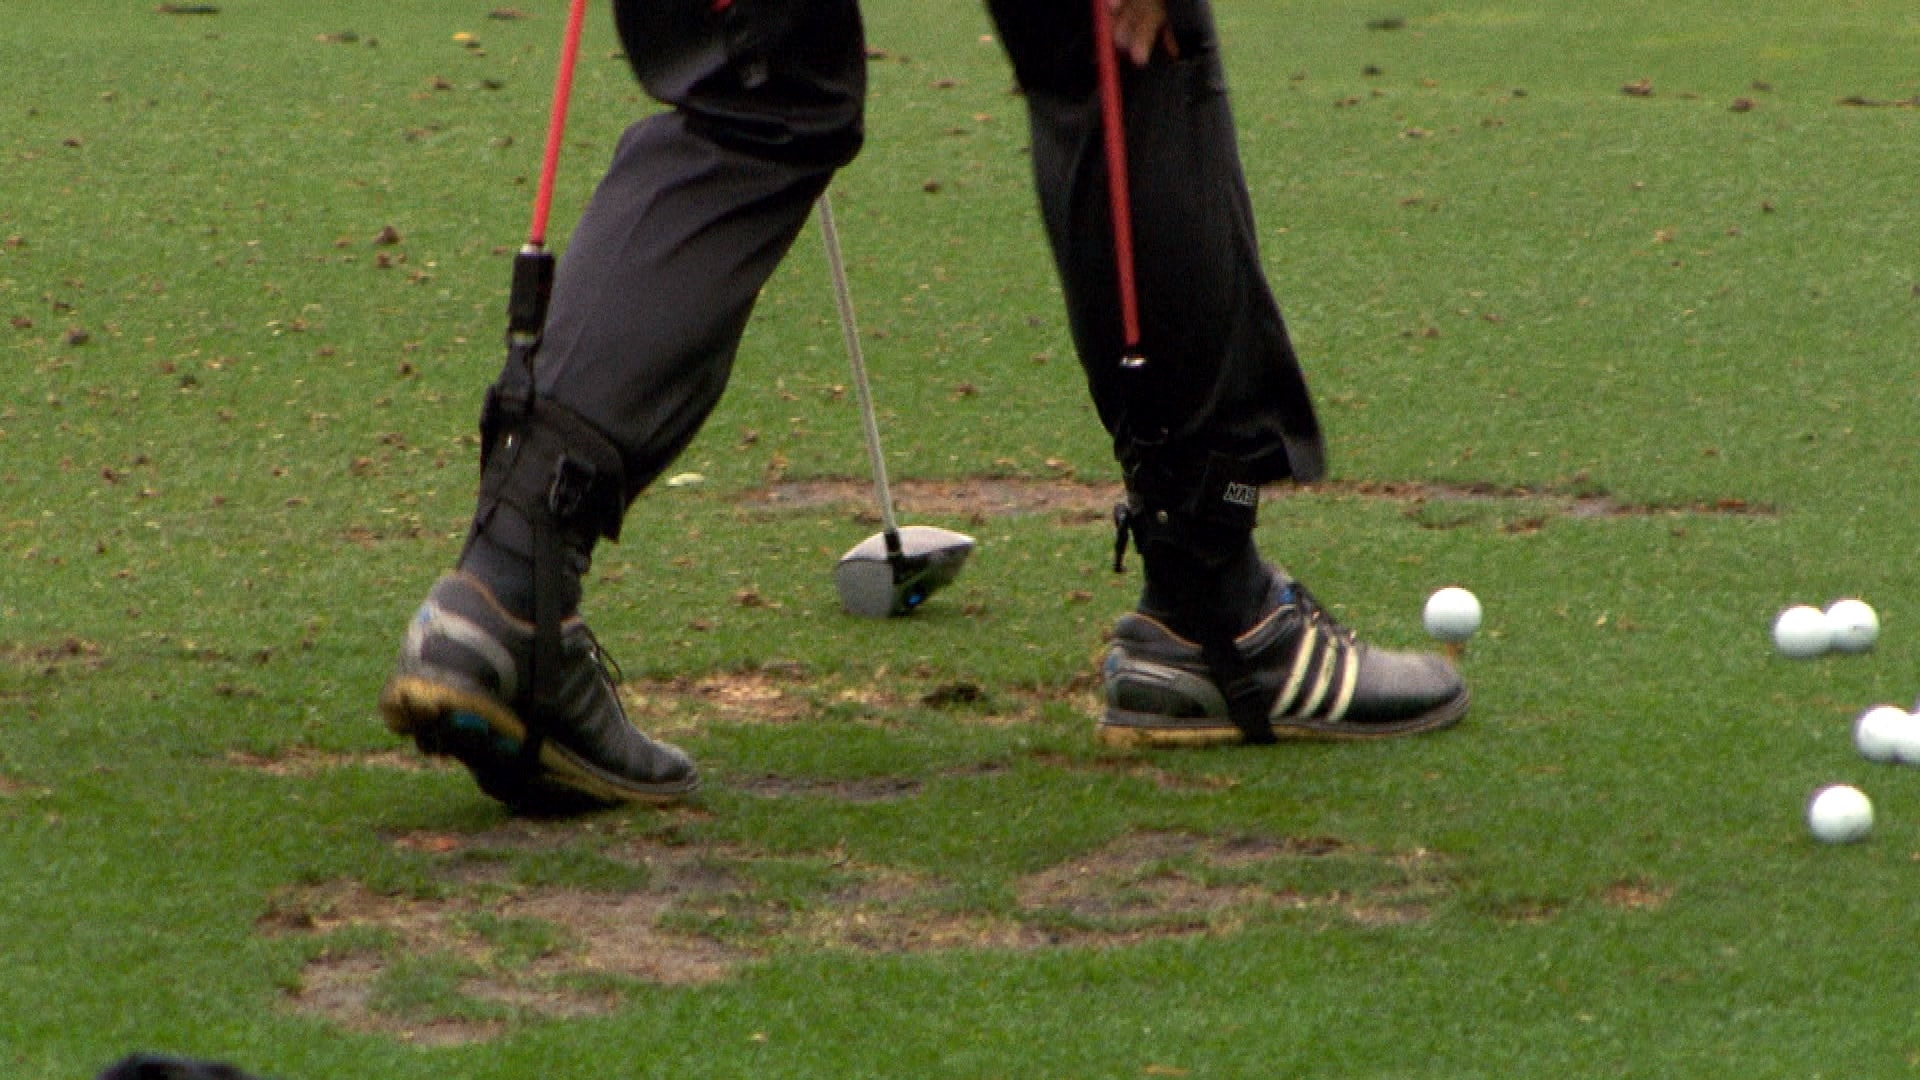 on portable swingcheck aid plane golf aids swing correctly watch training to help youtube